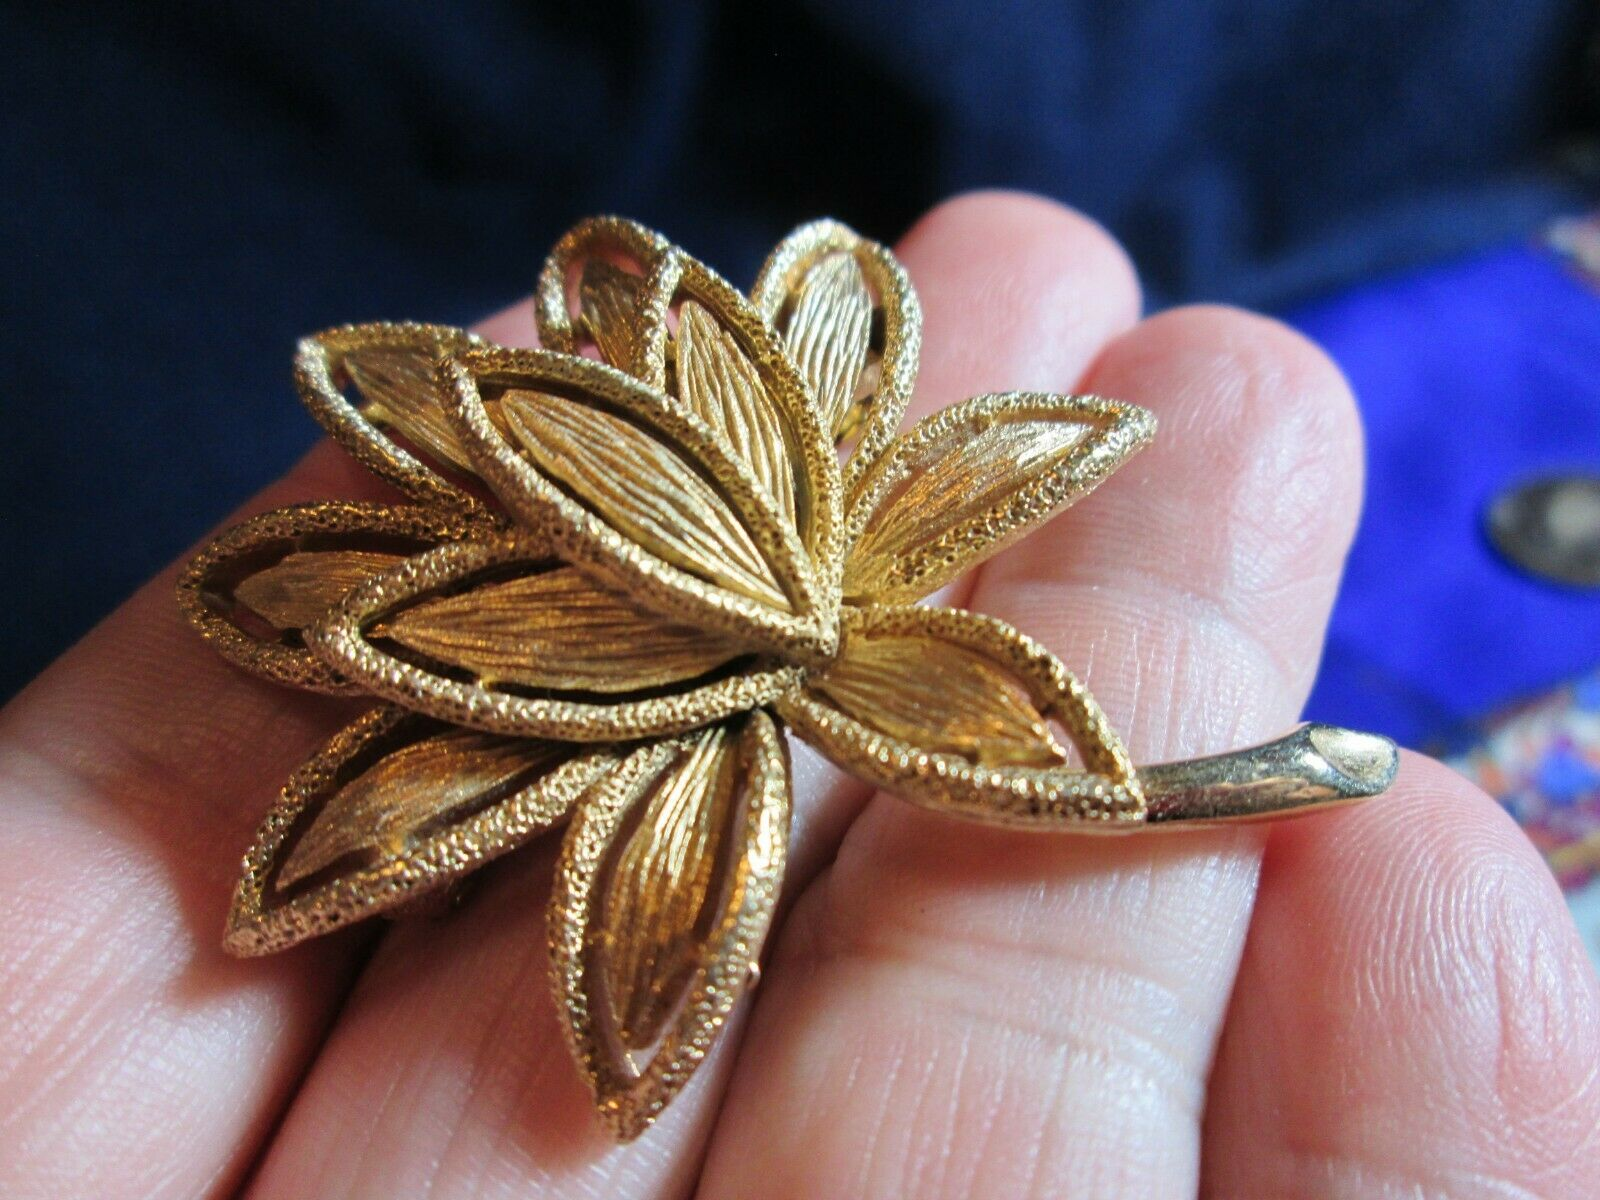 Vintage Textured Gold Tone Openwork Leaf Pin and Clip On Earrings Jewelry Set Florentine Finish Demi Parure